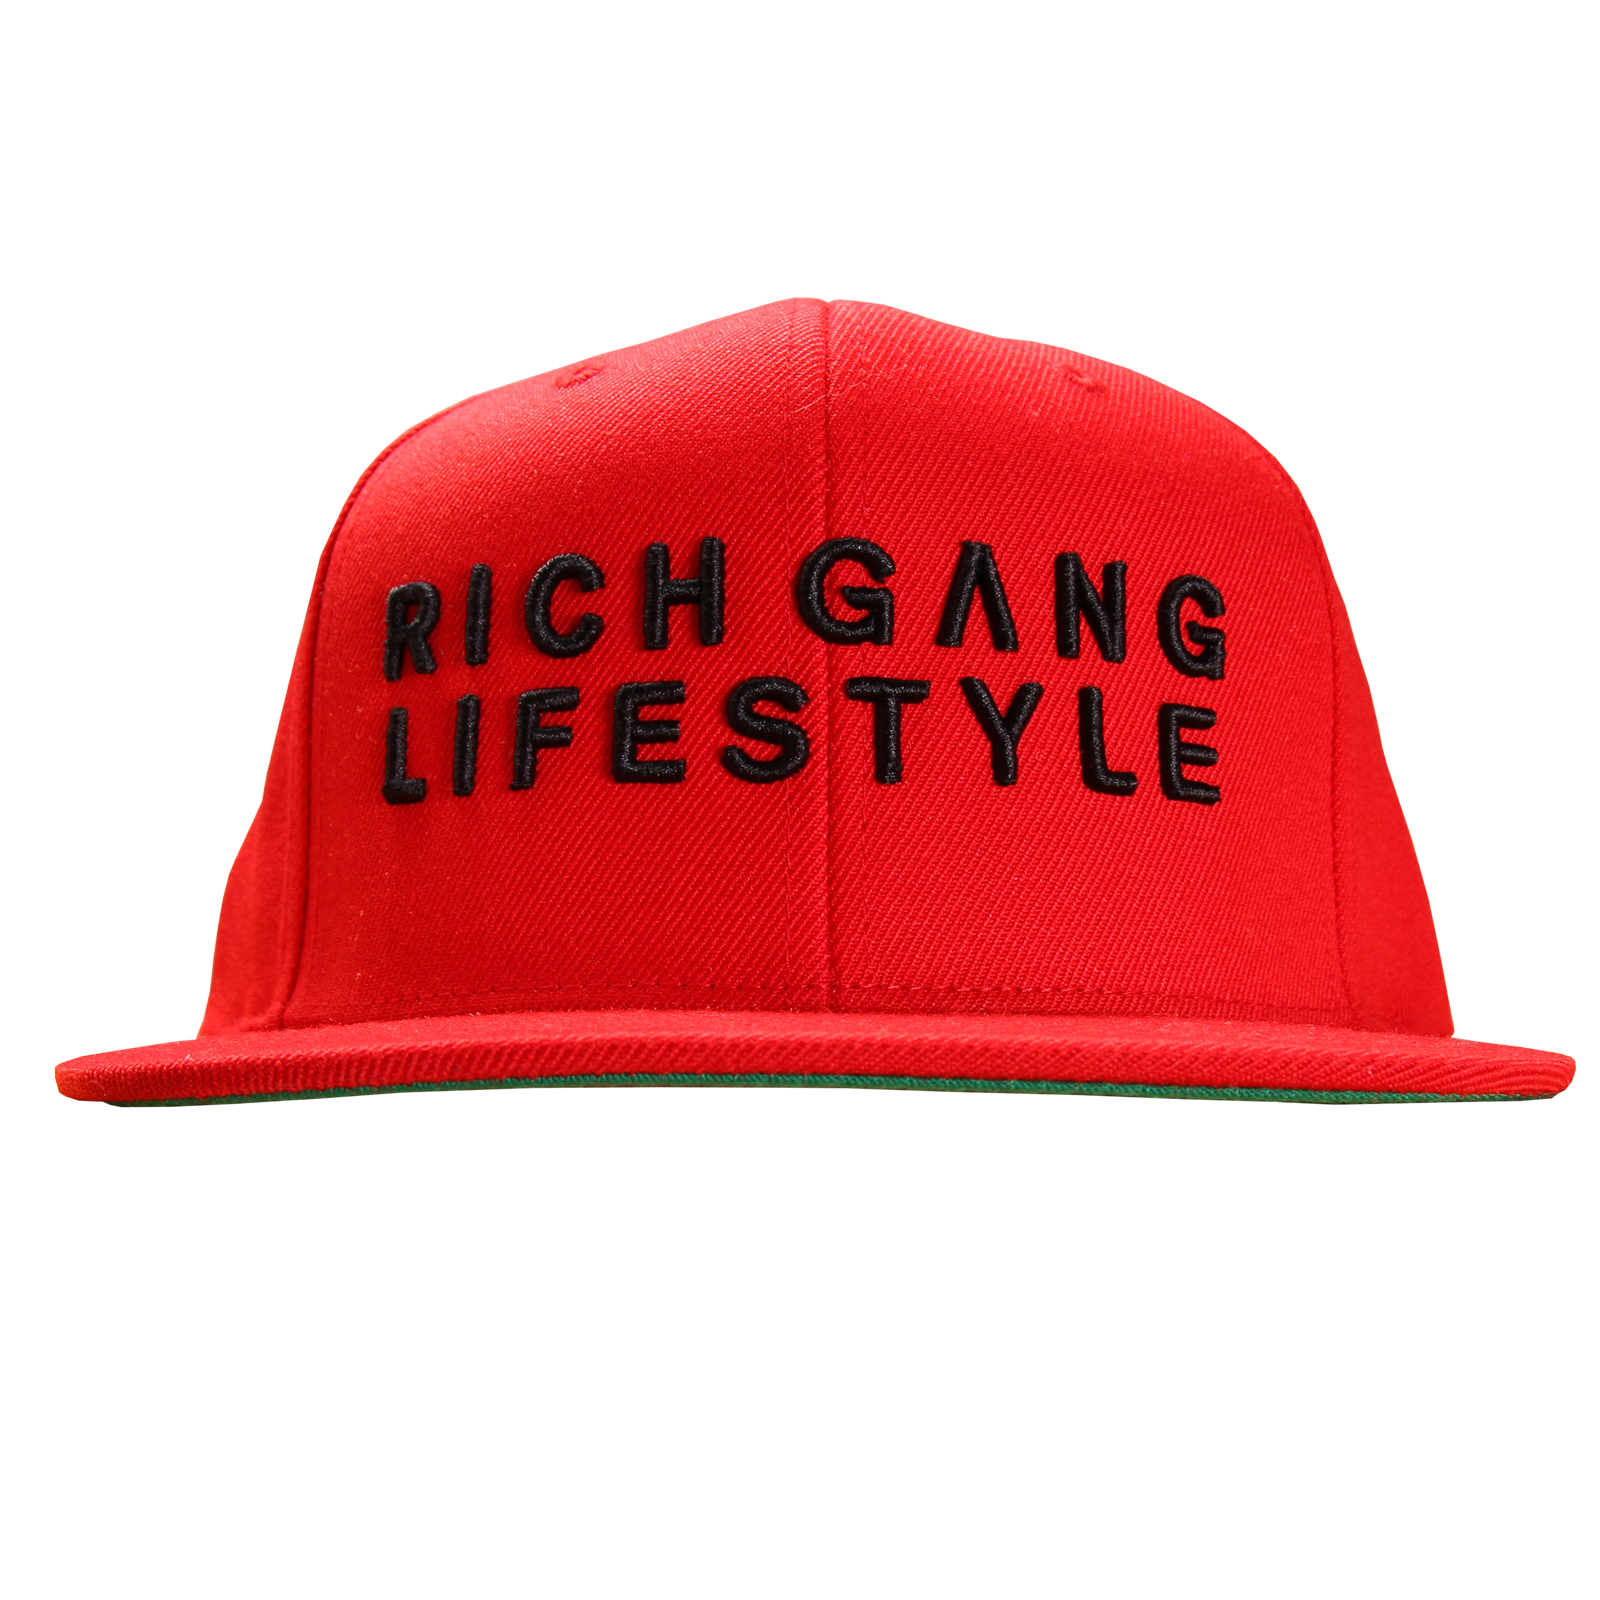 Rich Gang Lifestyle Red Snapback